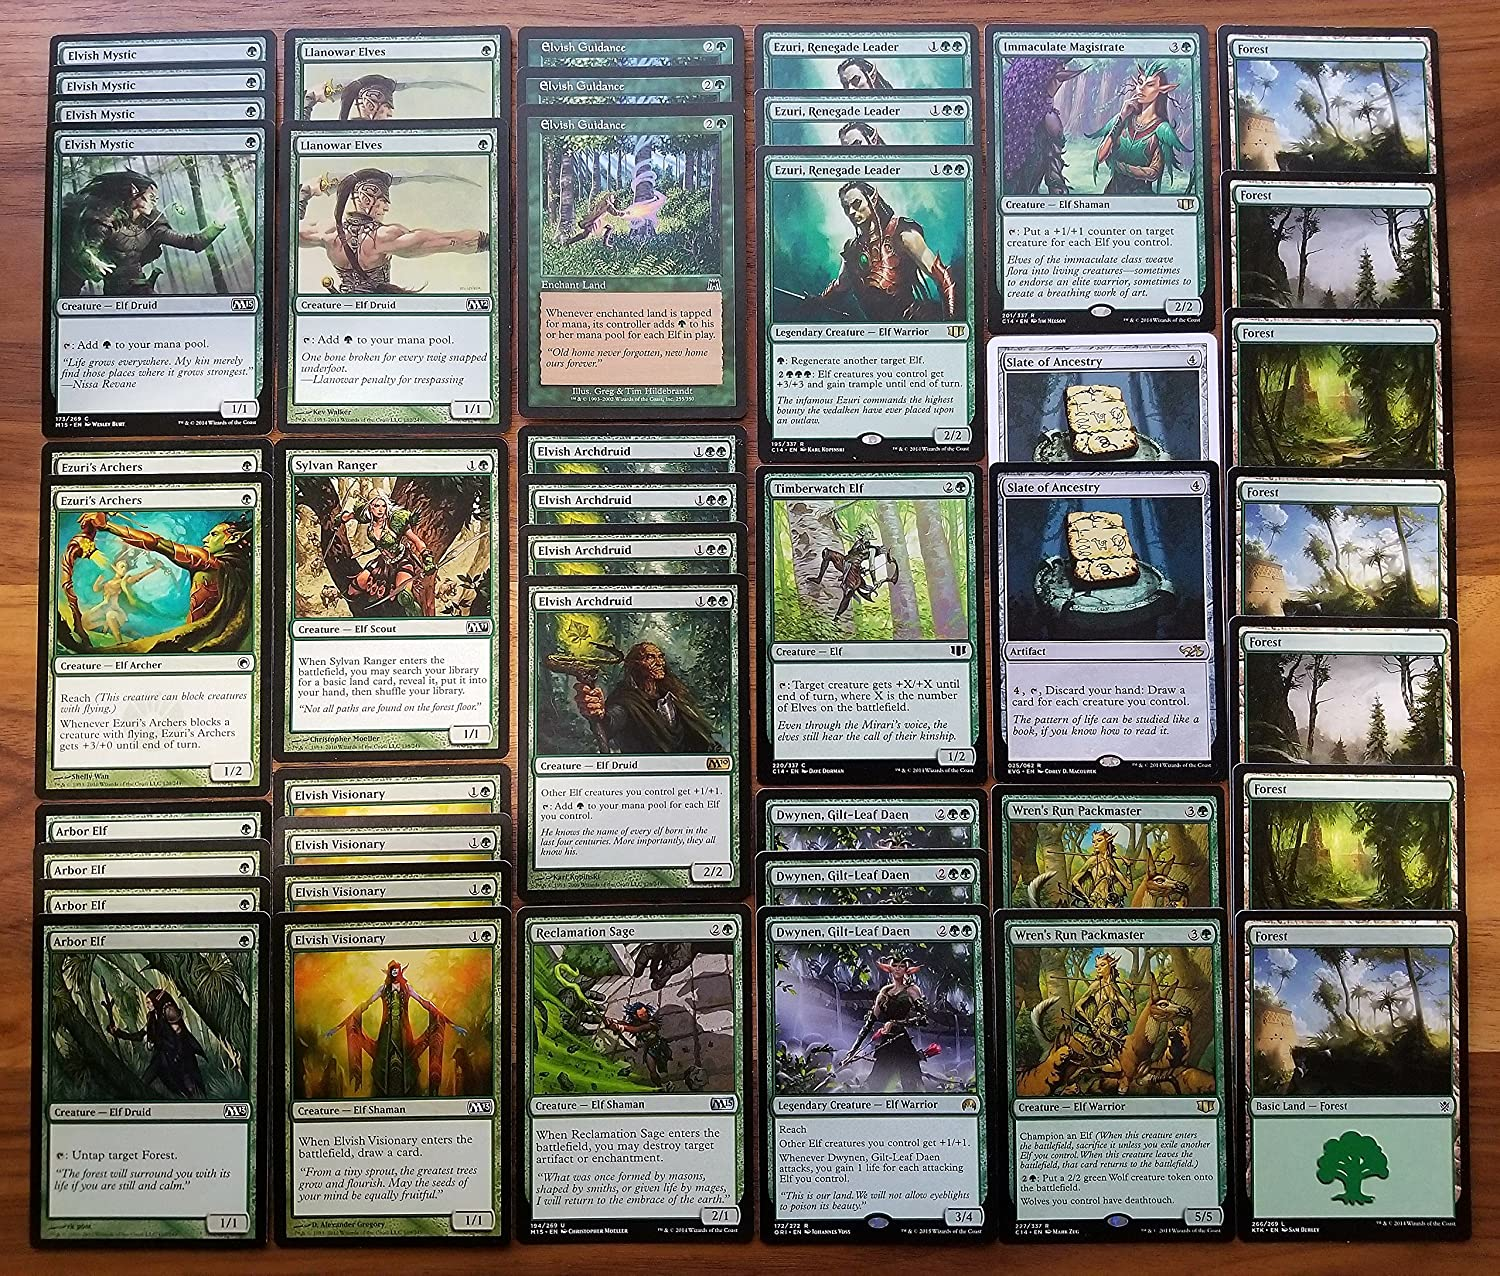 Amazon Com Magic The Gathering Green Elf Ramp Overwhelm Custom Magic Deck Toys Games Standard orzhov control decks from the best players around the world. magic the gathering green elf ramp overwhelm custom magic deck